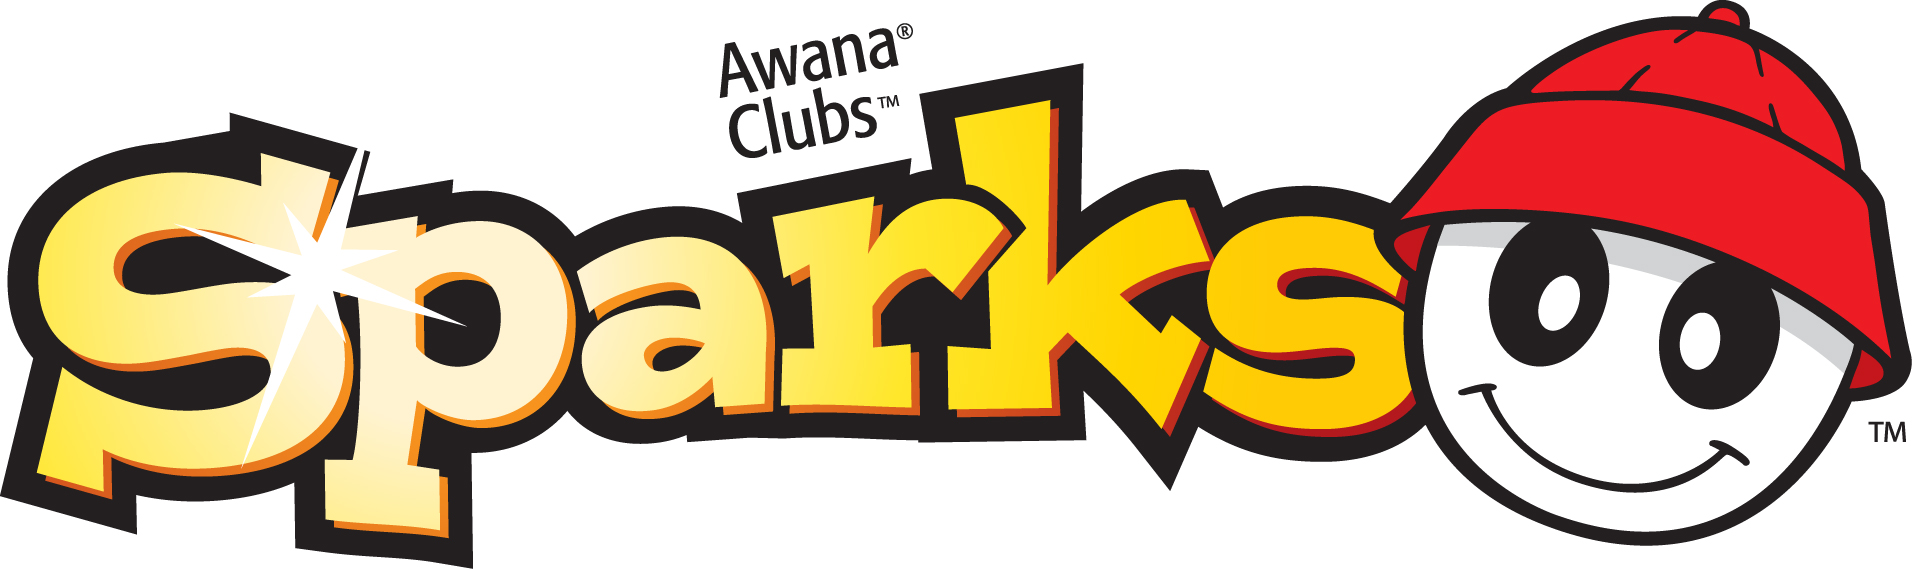 childrens-awana-sparks